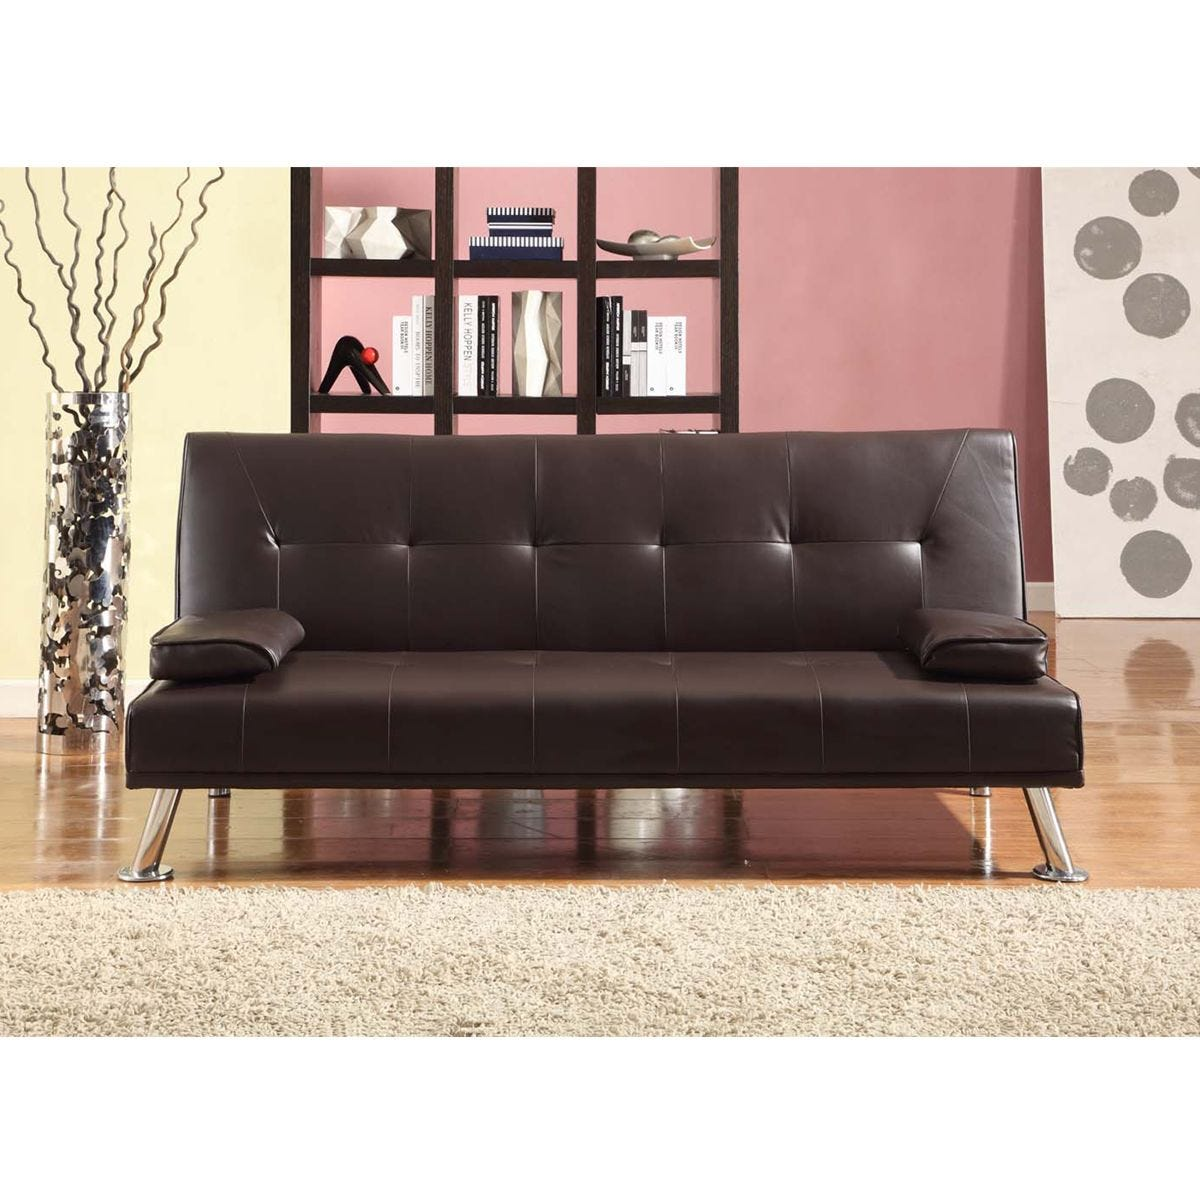 Cairns Sofa Bed - Brown